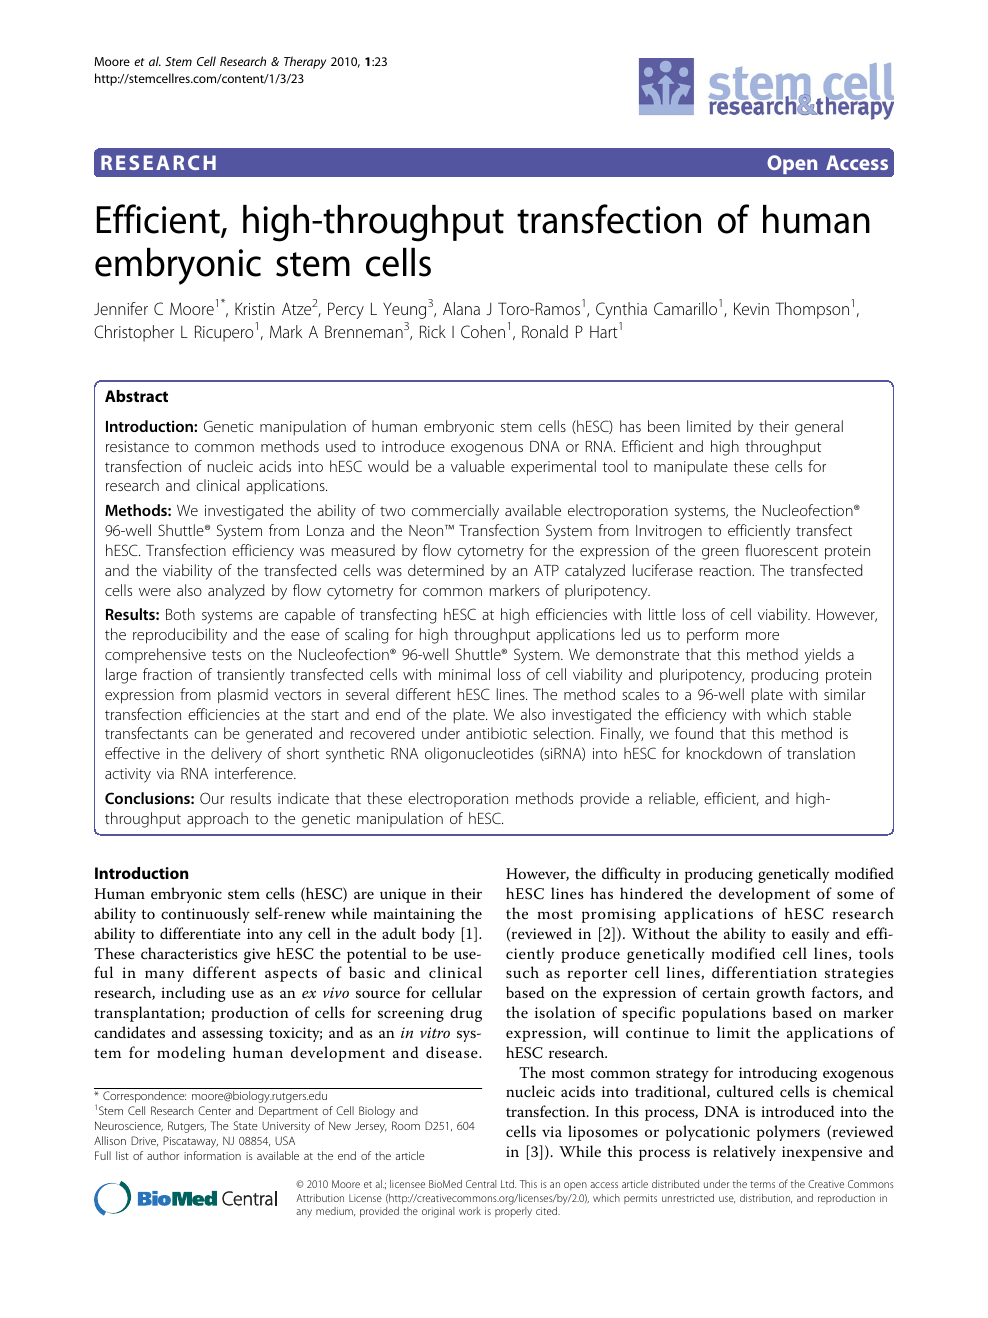 Efficient, high-throughput transfection of human embryonic stem cells –  topic of research paper in Biological sciences. Download scholarly article  PDF and read for free on CyberLeninka open science hub.